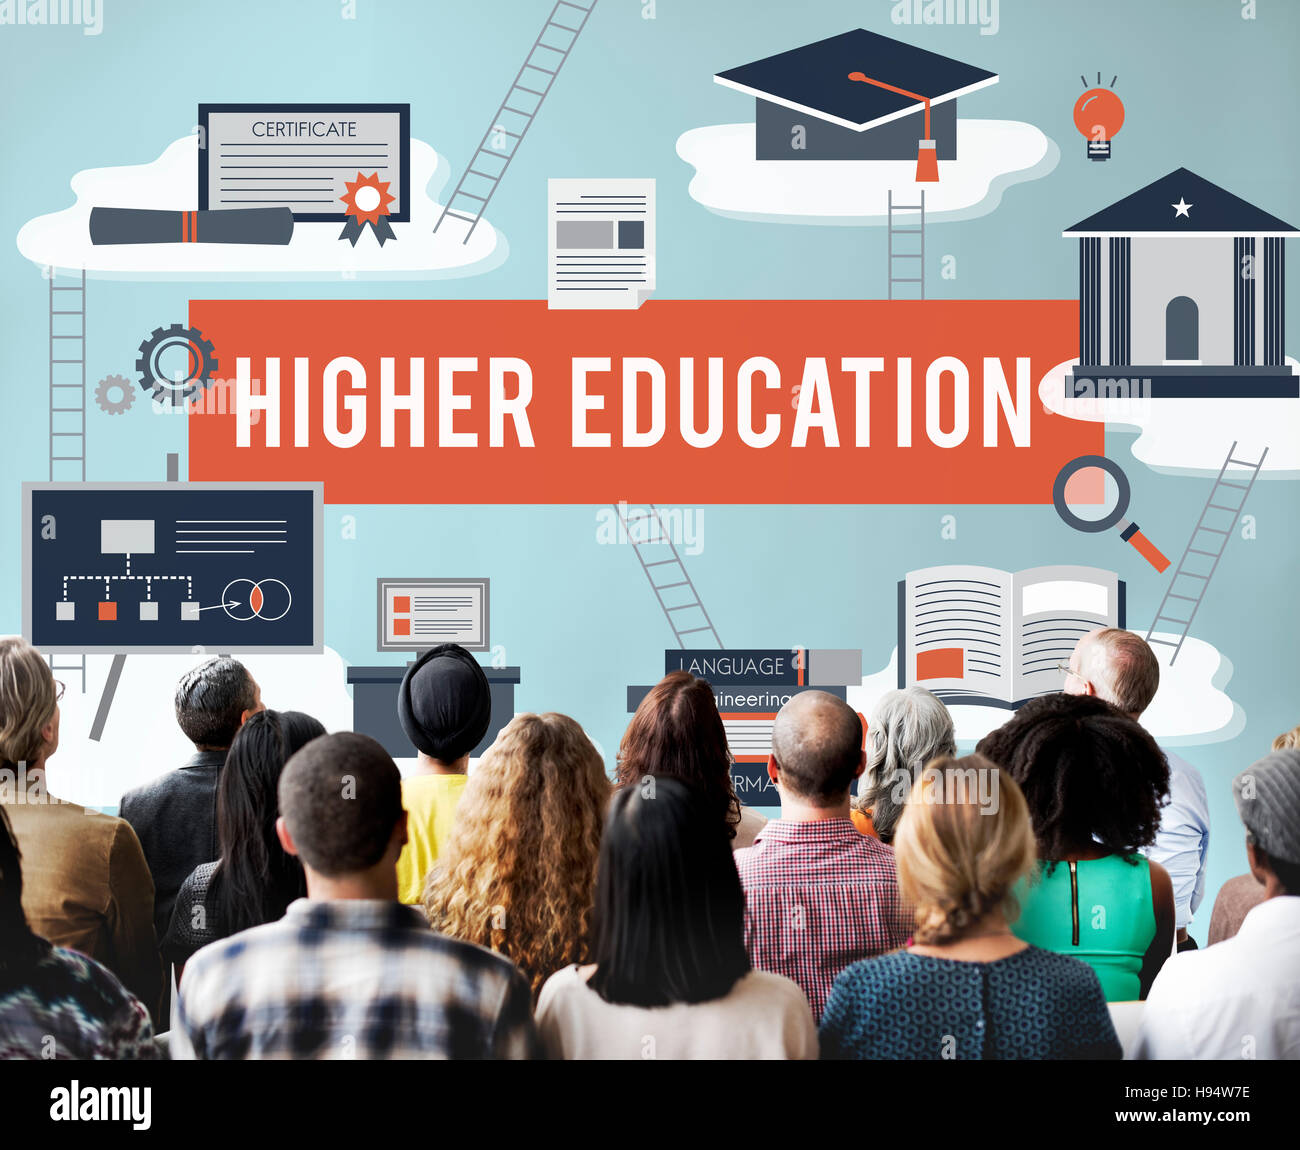 Higher Education Academic Bachelor Financial Aid Concept - Stock Image